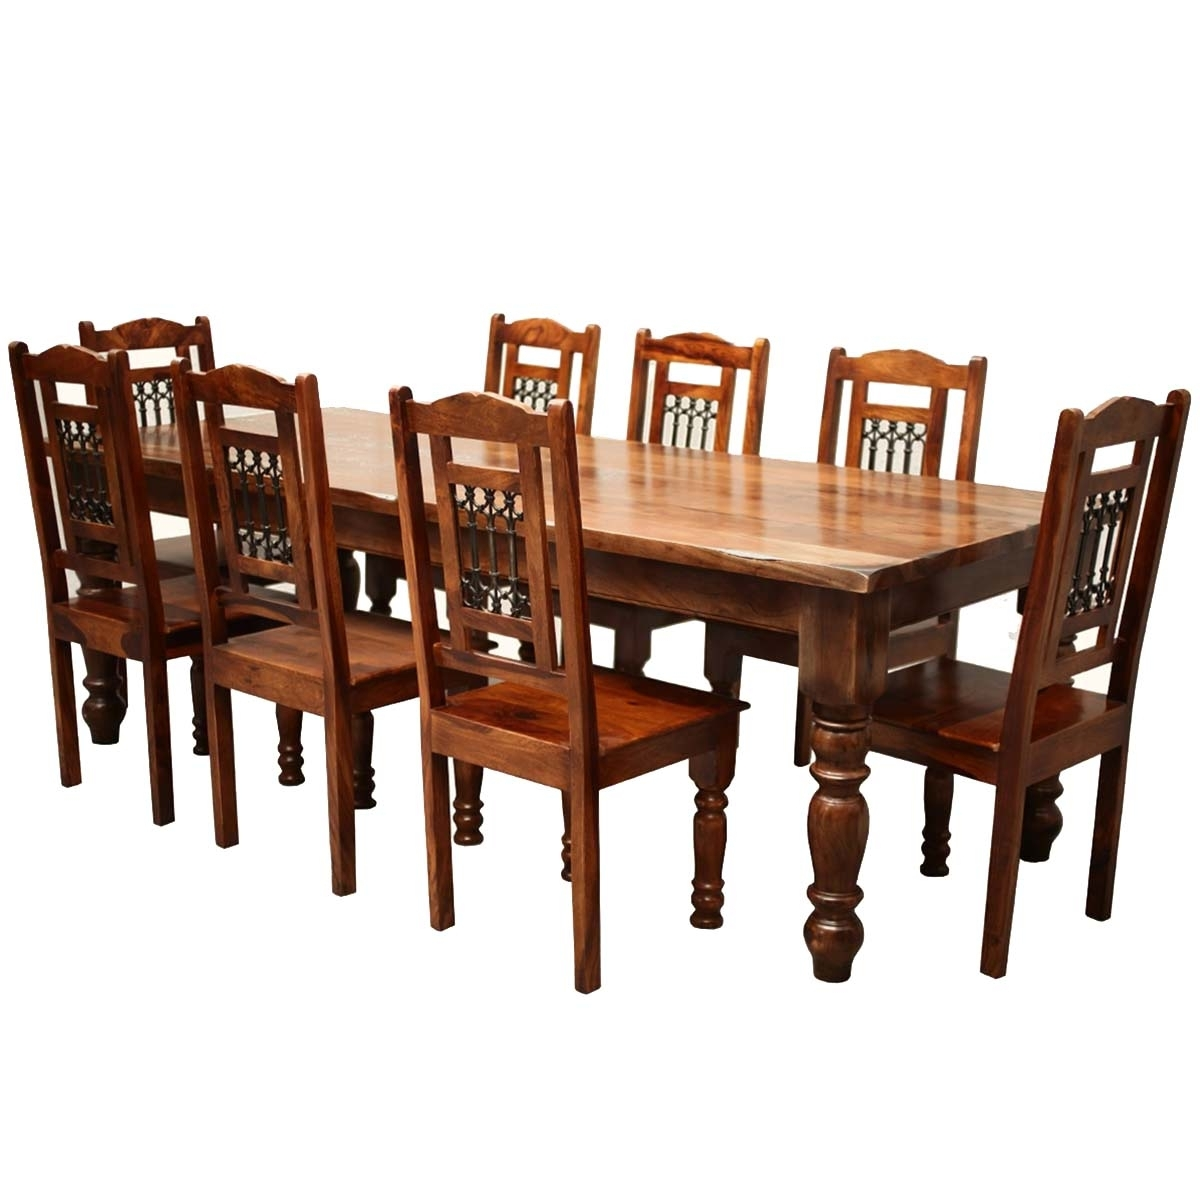 Solid Oak Dining Tables And 8 Chairs Intended For Most Current Rustic Furniture Solid Wood Large Dining Table & 8 Chair Set (View 19 of 25)